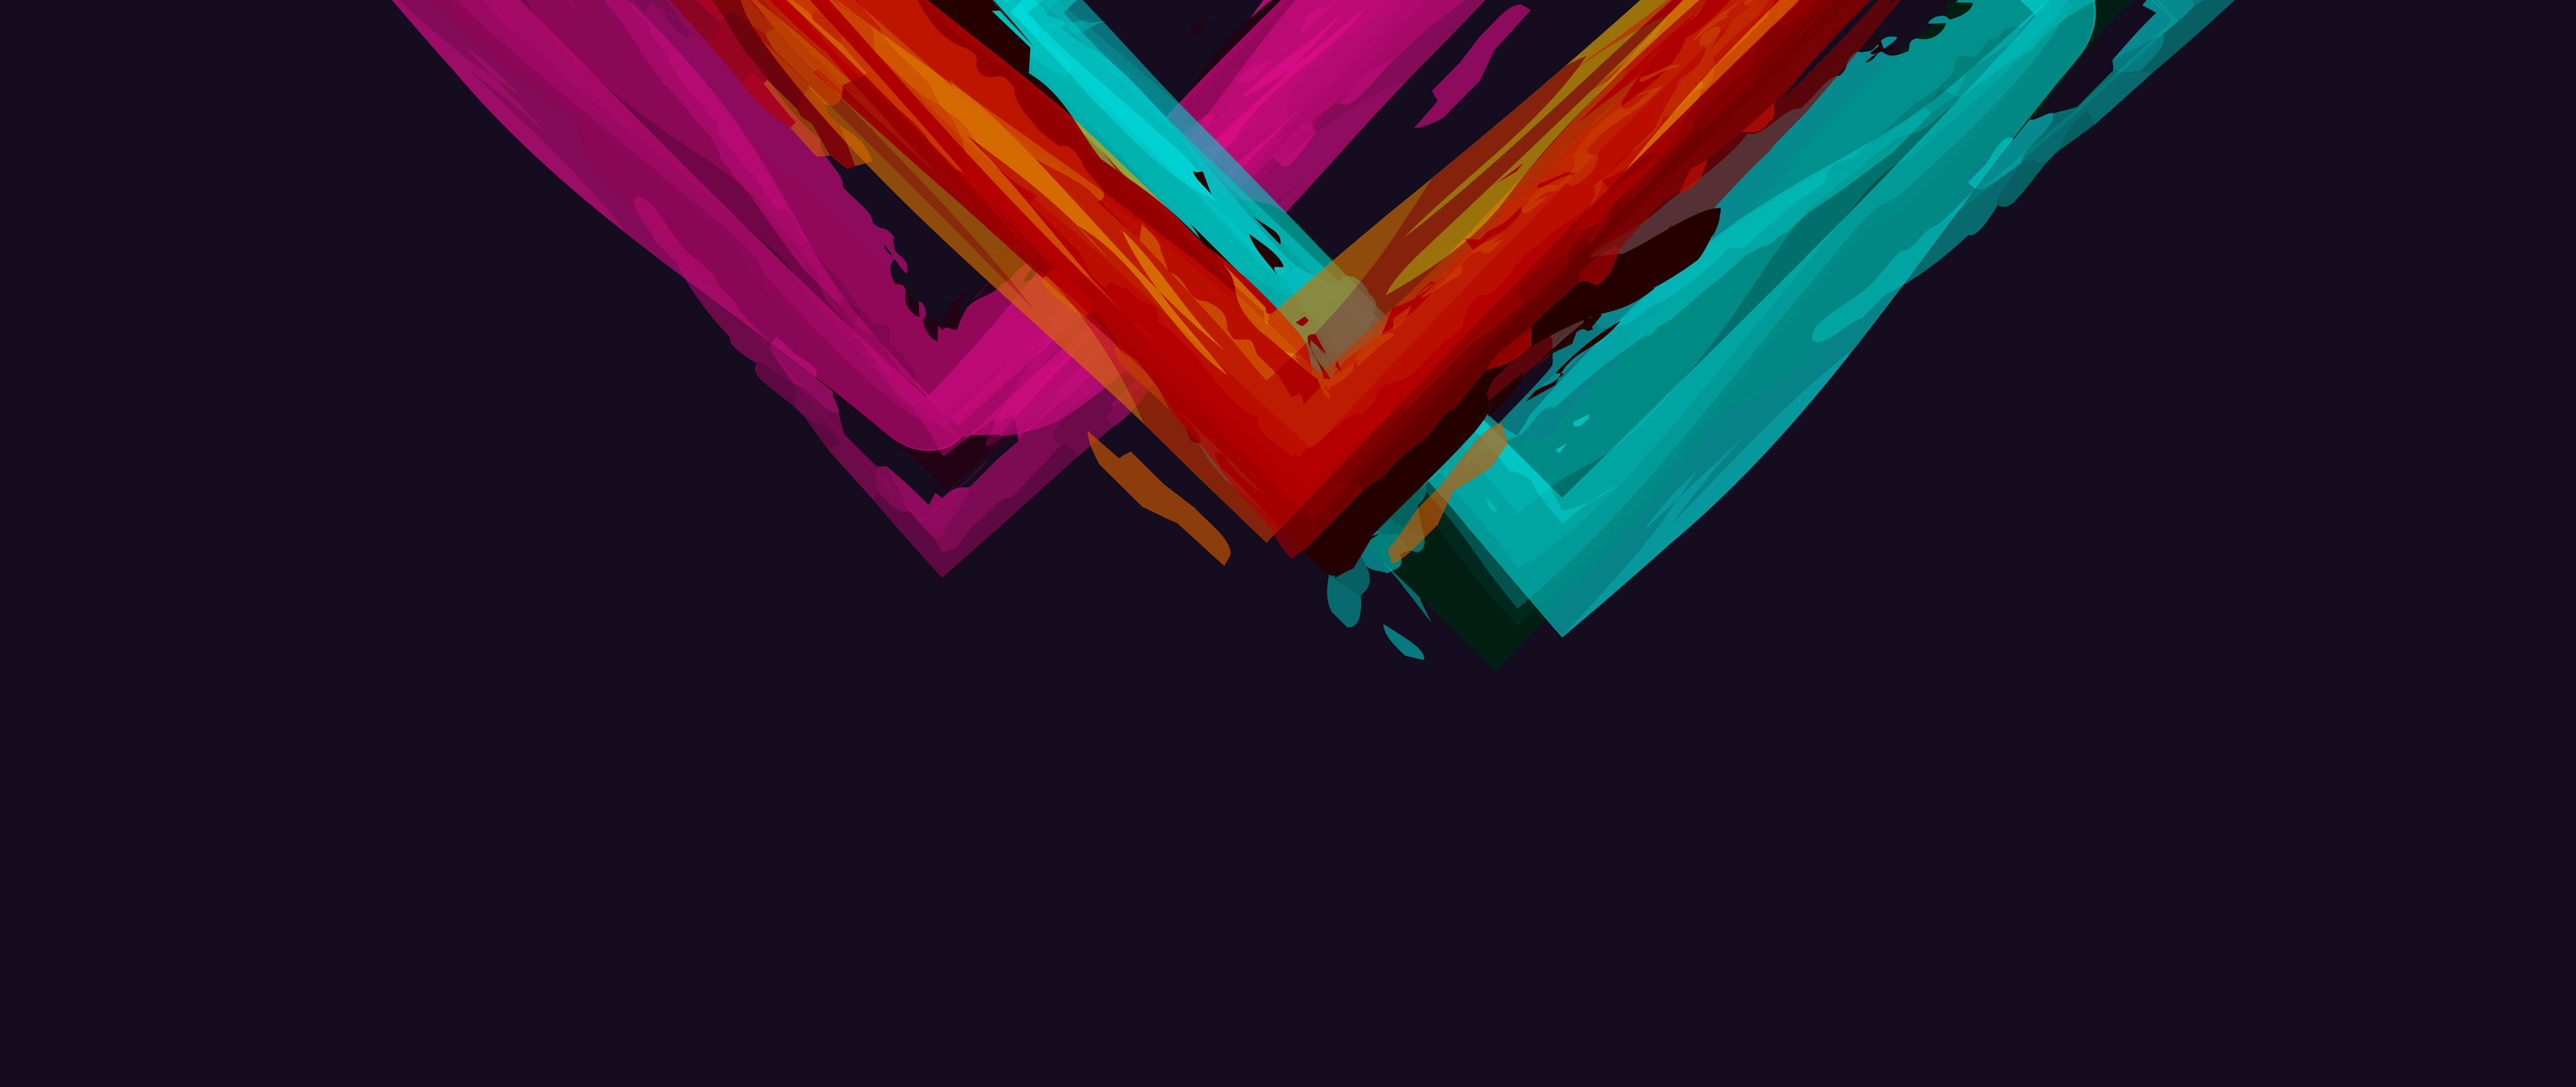 Minimalistic Abstract Colors Simple Background 5k Hd Abstract 4k Wallpapers Images Backgrounds Photos And Pictures